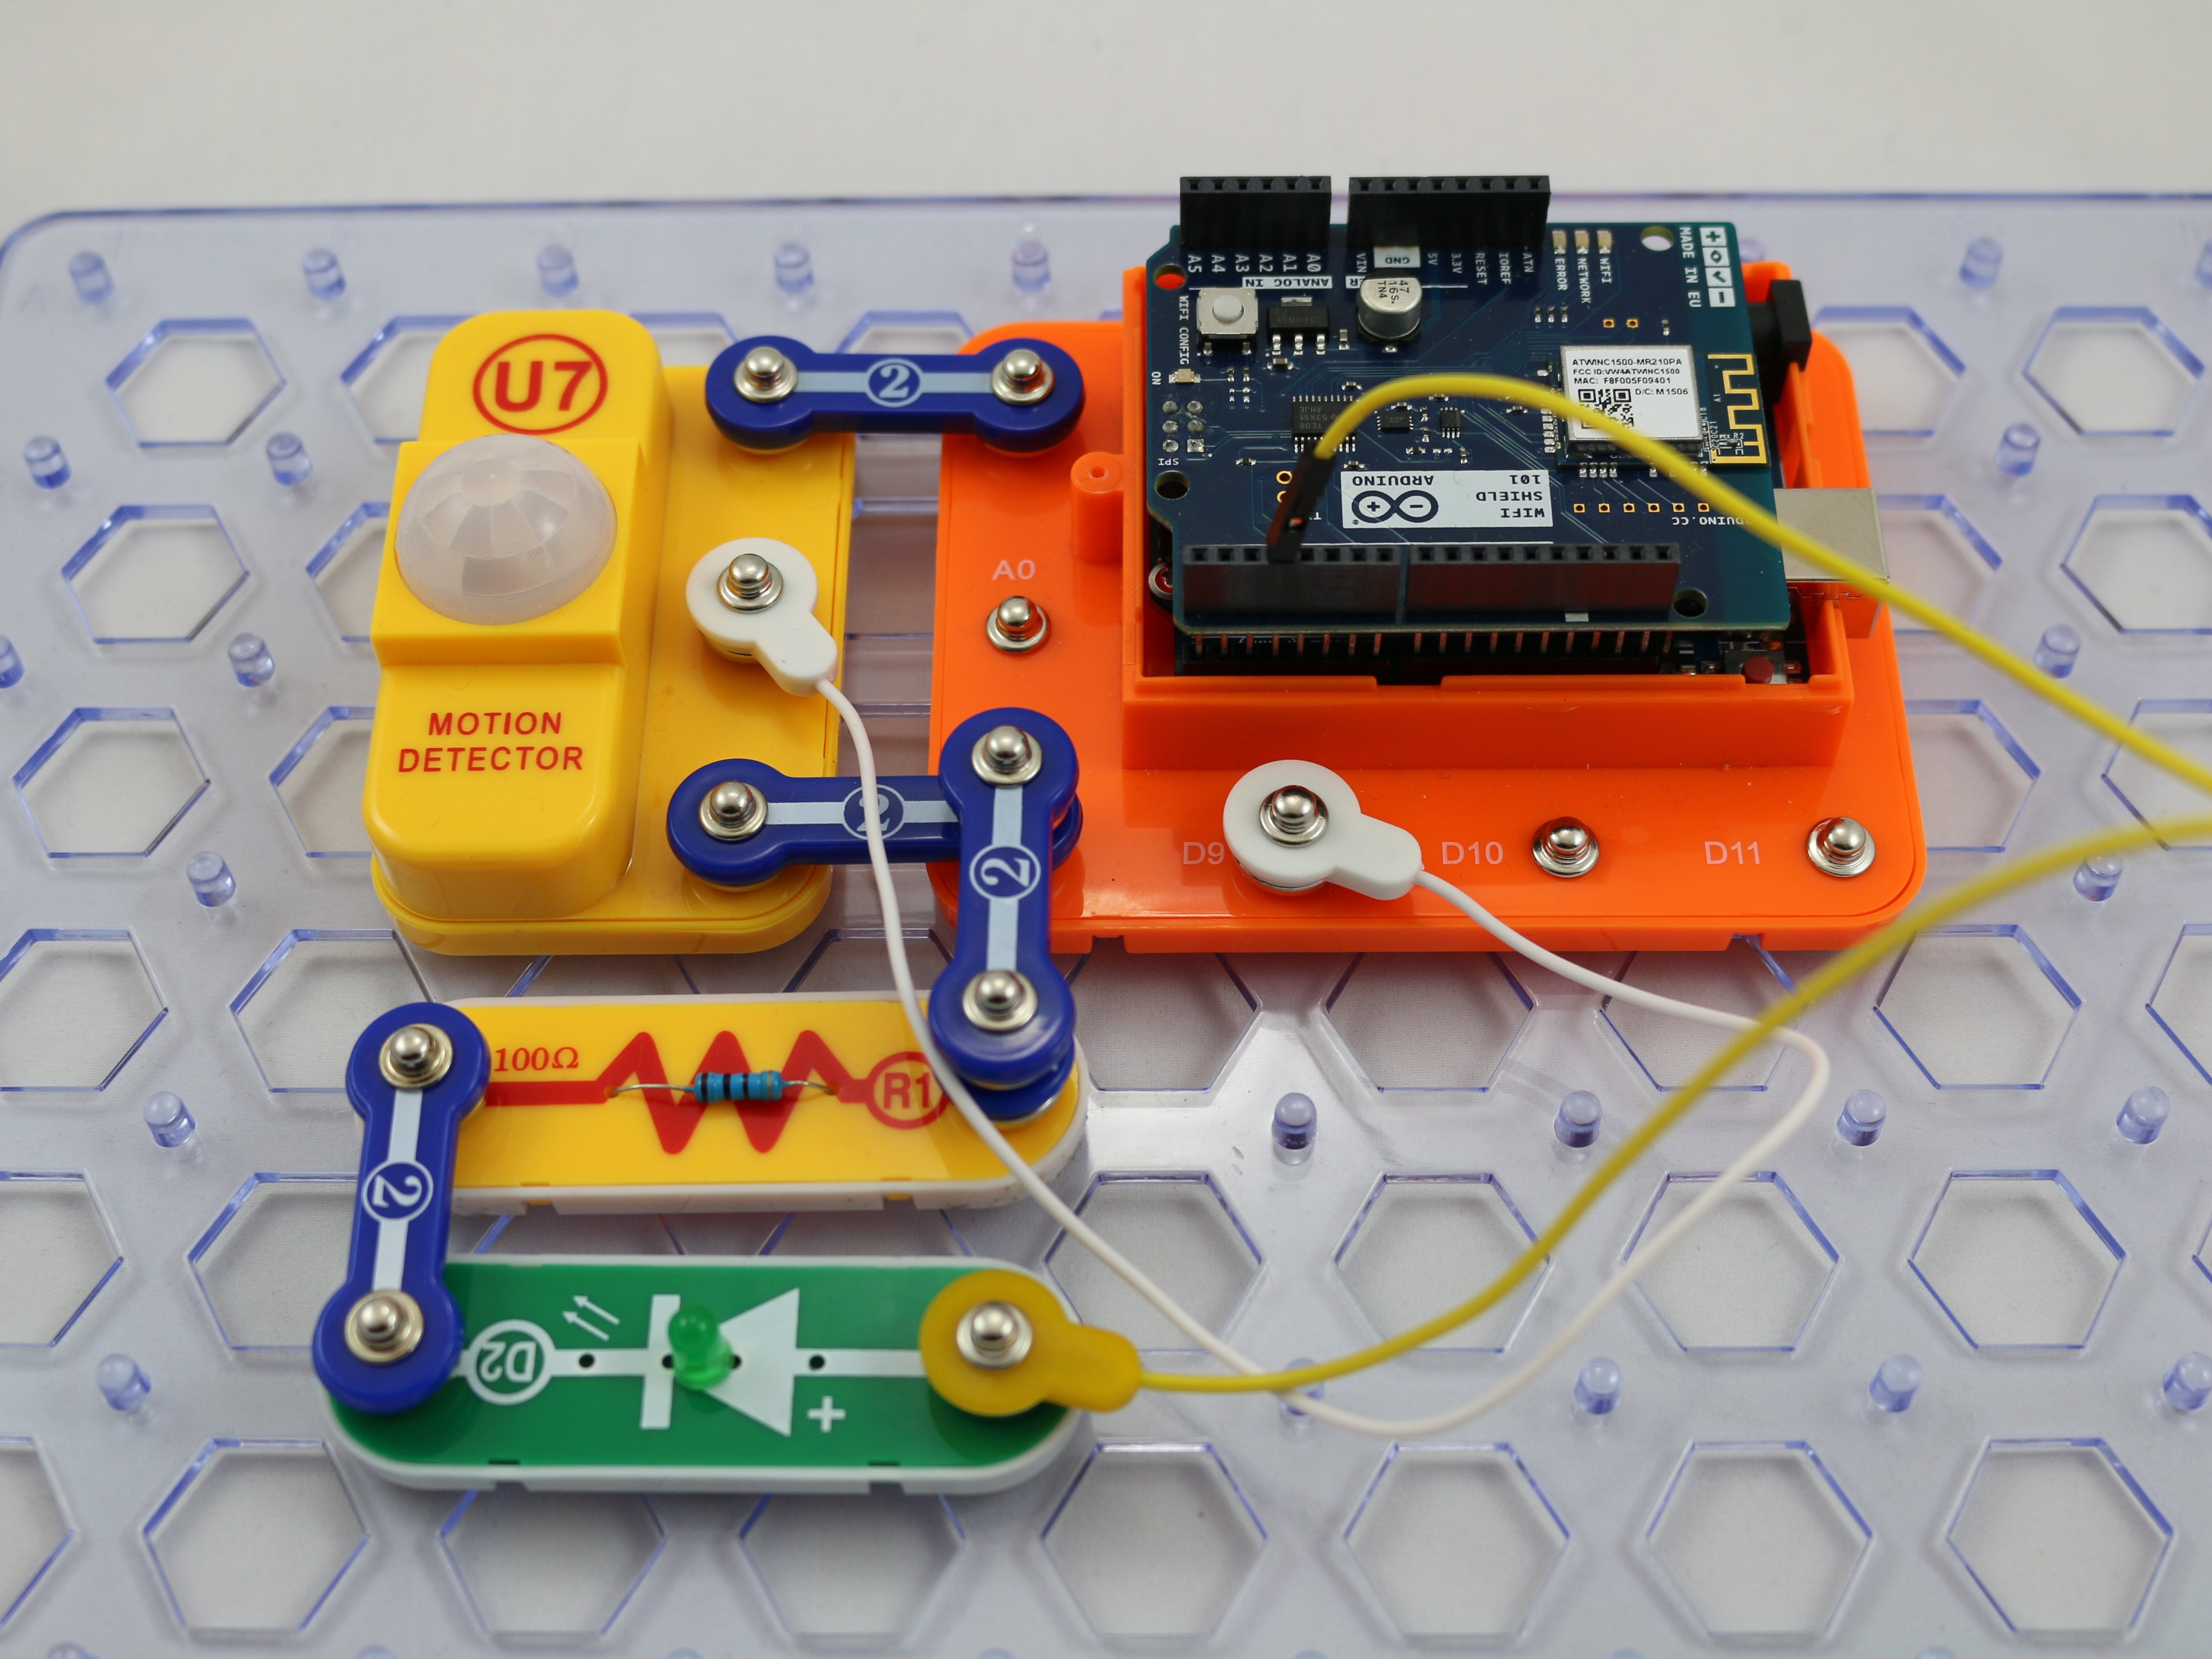 Snap Circuits Schematics Electrical Wiring Diagrams Extreme Educational 750 Exp Snapino Ifttt Arduino Project Hub Circuit Schematic Symbols